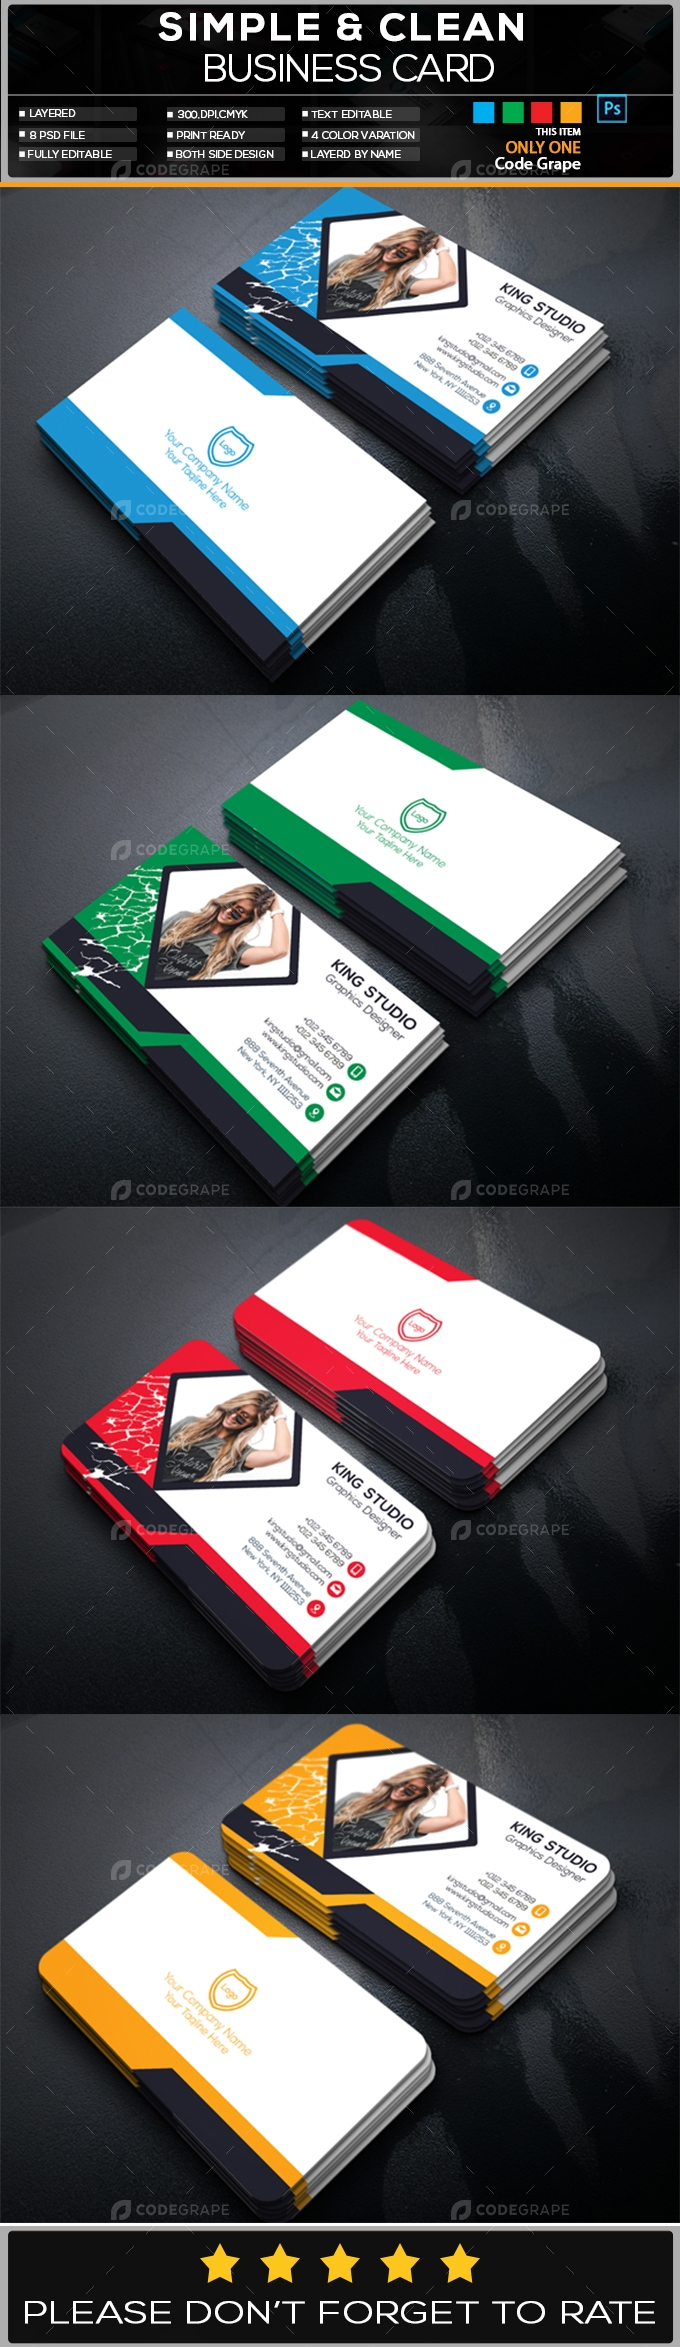 Photography Business Card Vol - 6